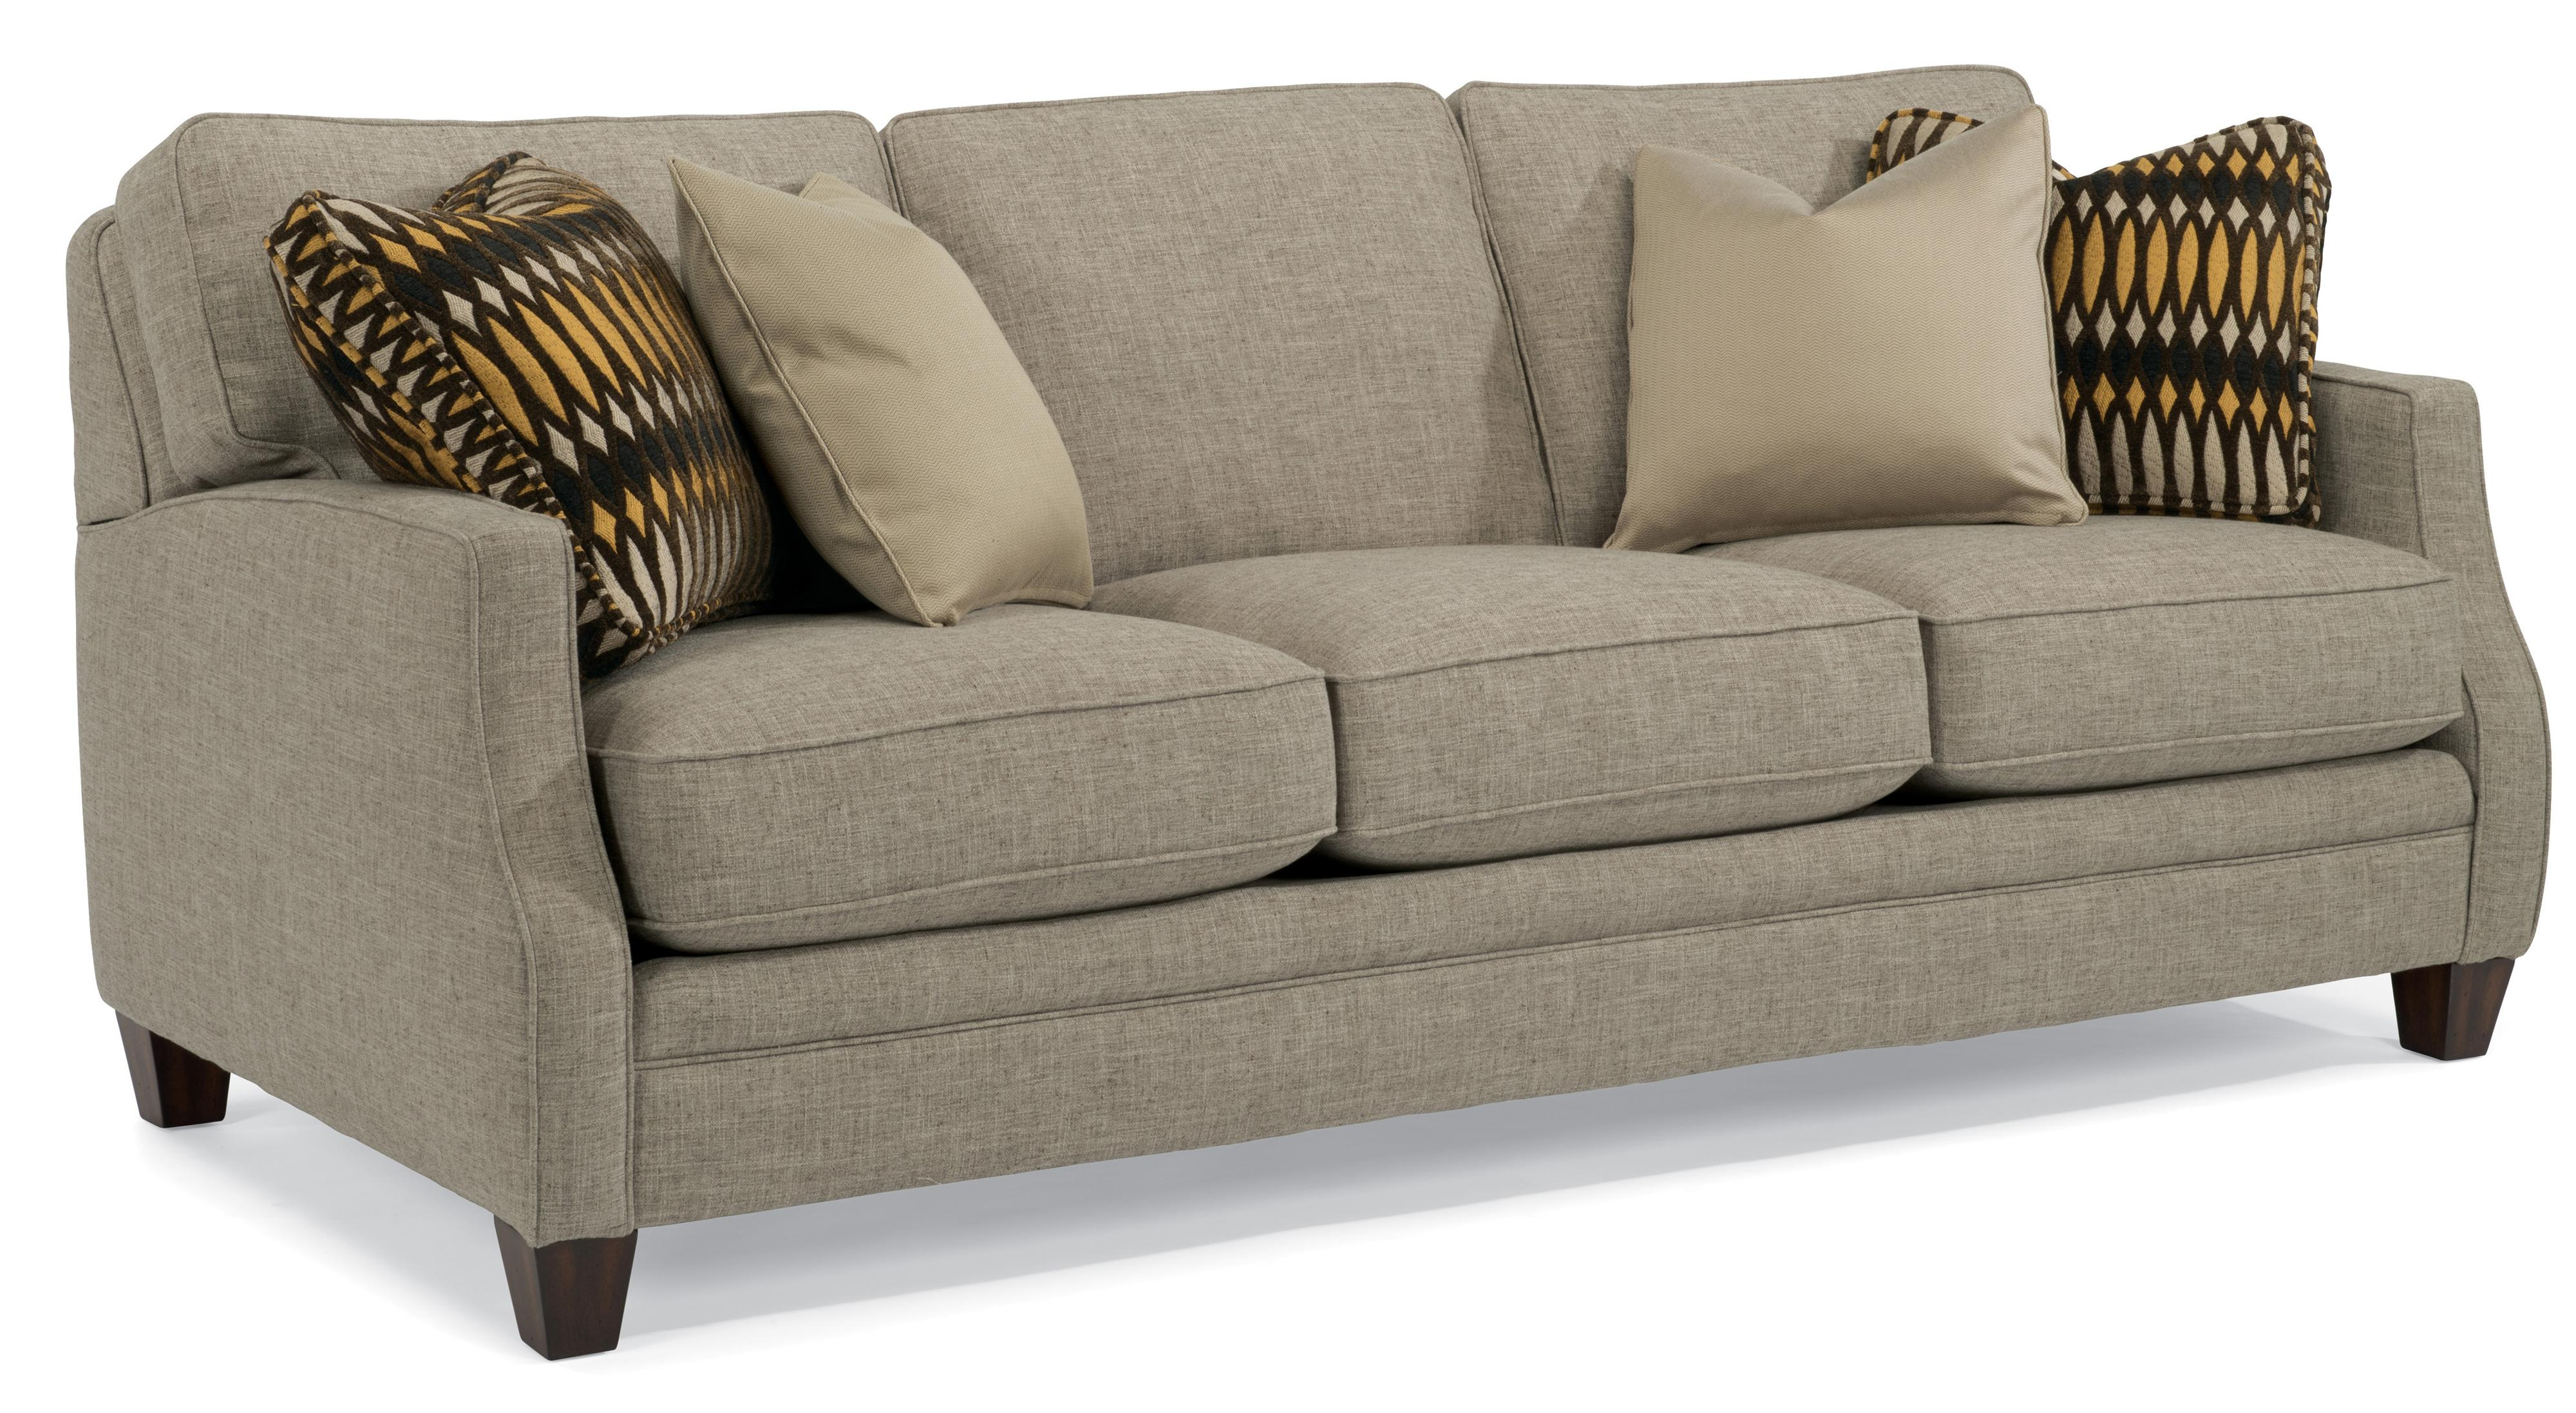 Flexsteel Lenox Sofa - Item Number: 7564-31-720-80